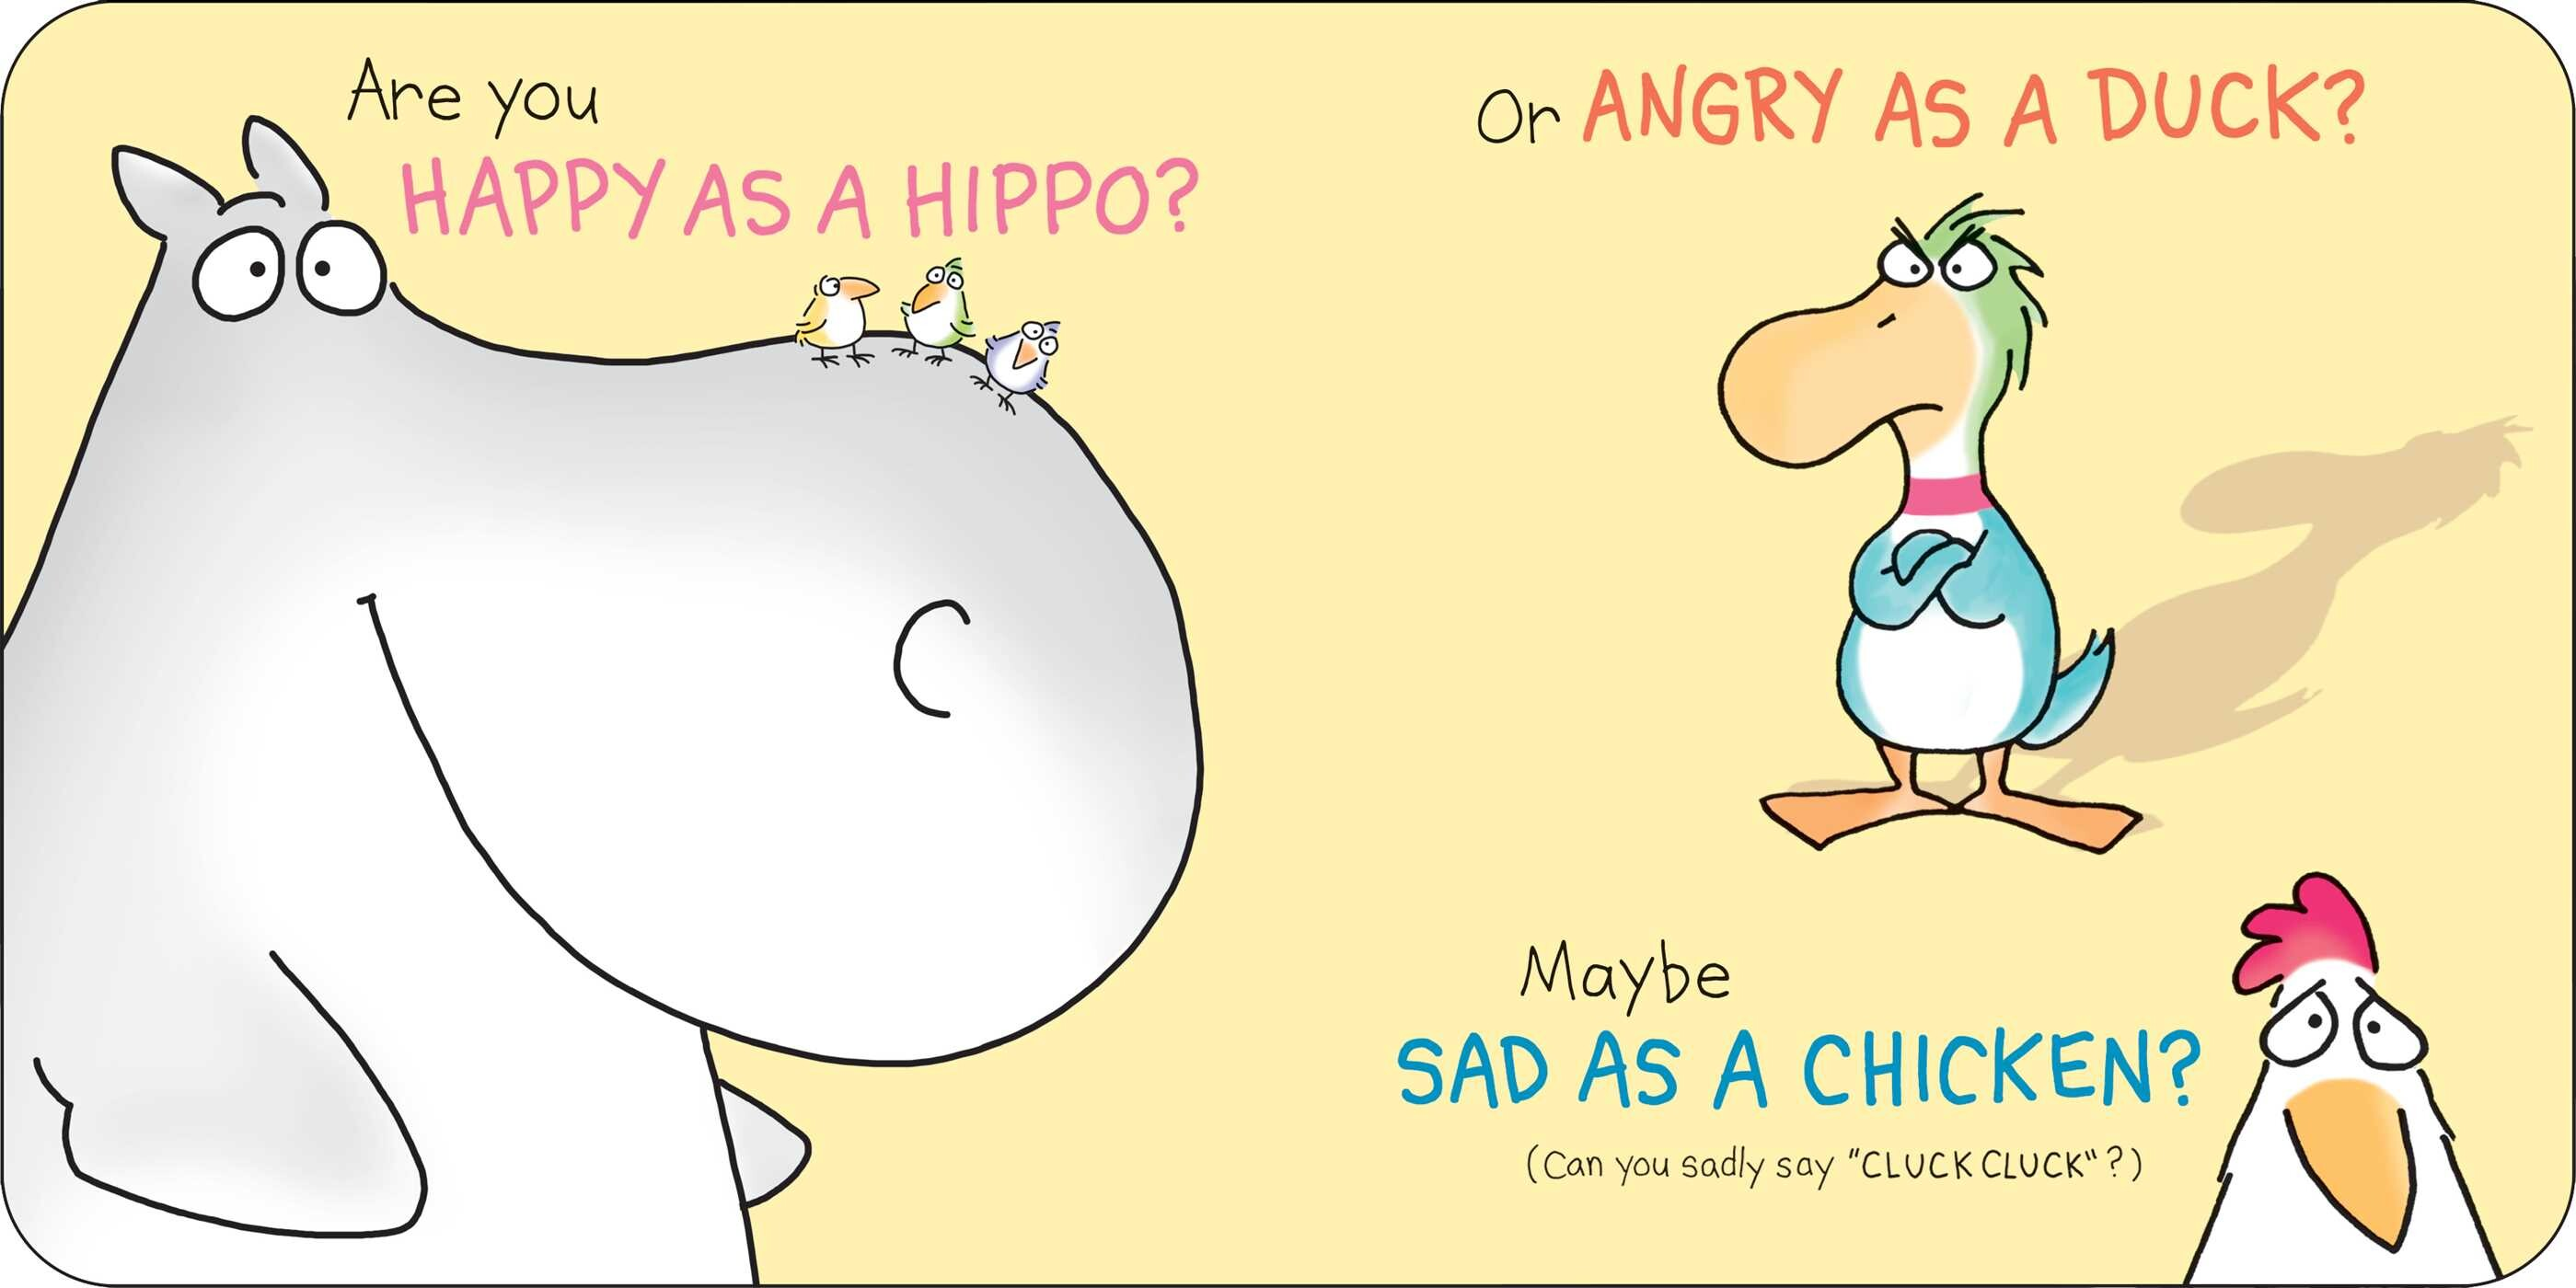 Happy-hippo-angry-duck-9781442417311.in01